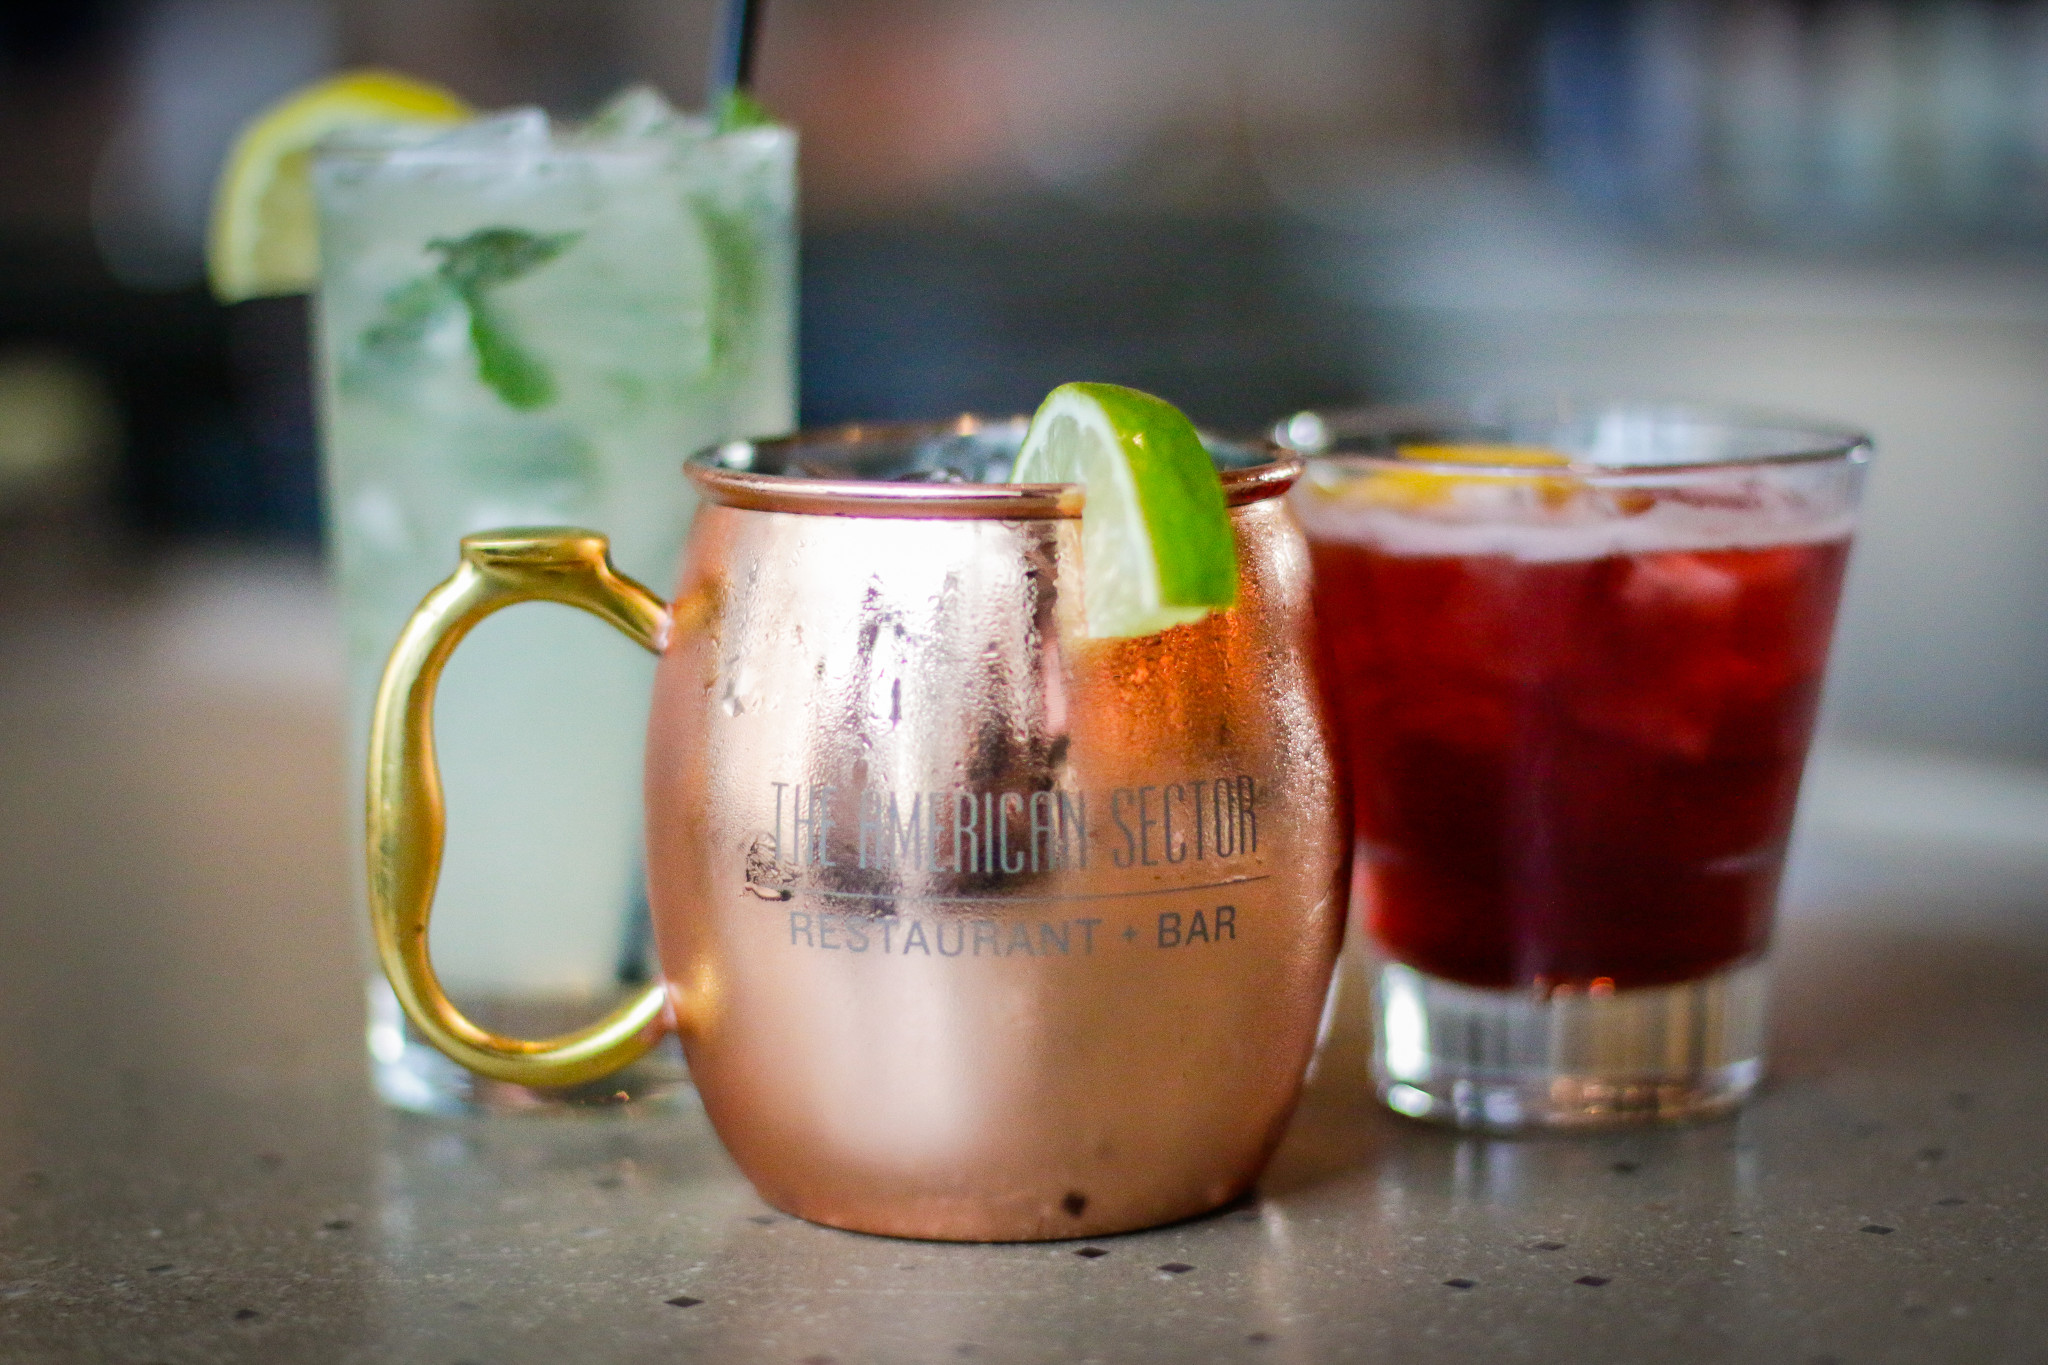 Happy hour drinks at American Sector. (Photo: Rebecca Ratliff)